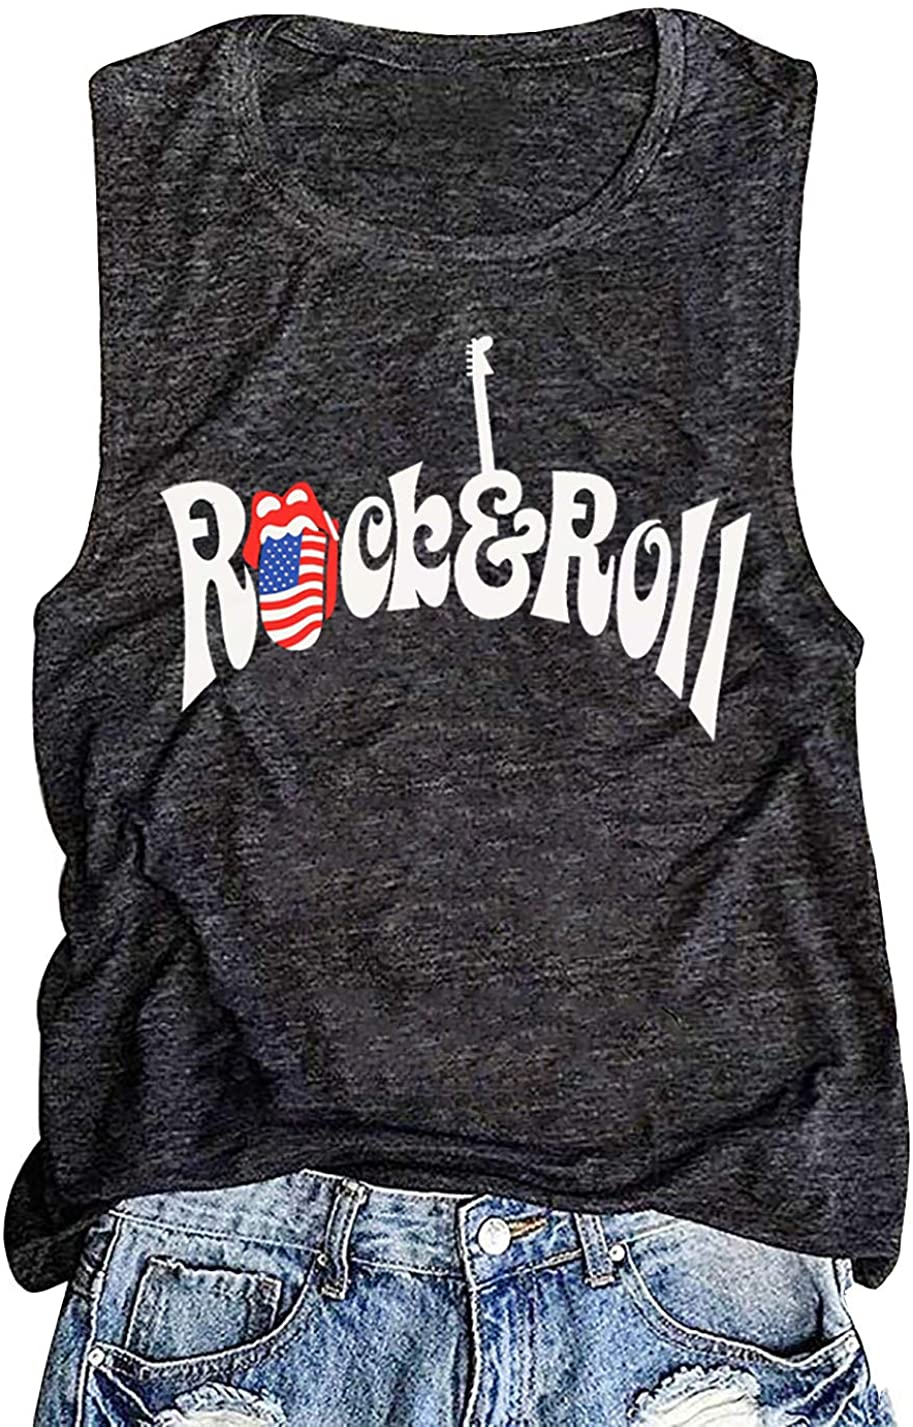 Rock and Roll Tank Tops for Women Guitars Music Tank USA Flag Graphic 4th of July Shirt Casual Sleeveless Vest Tee